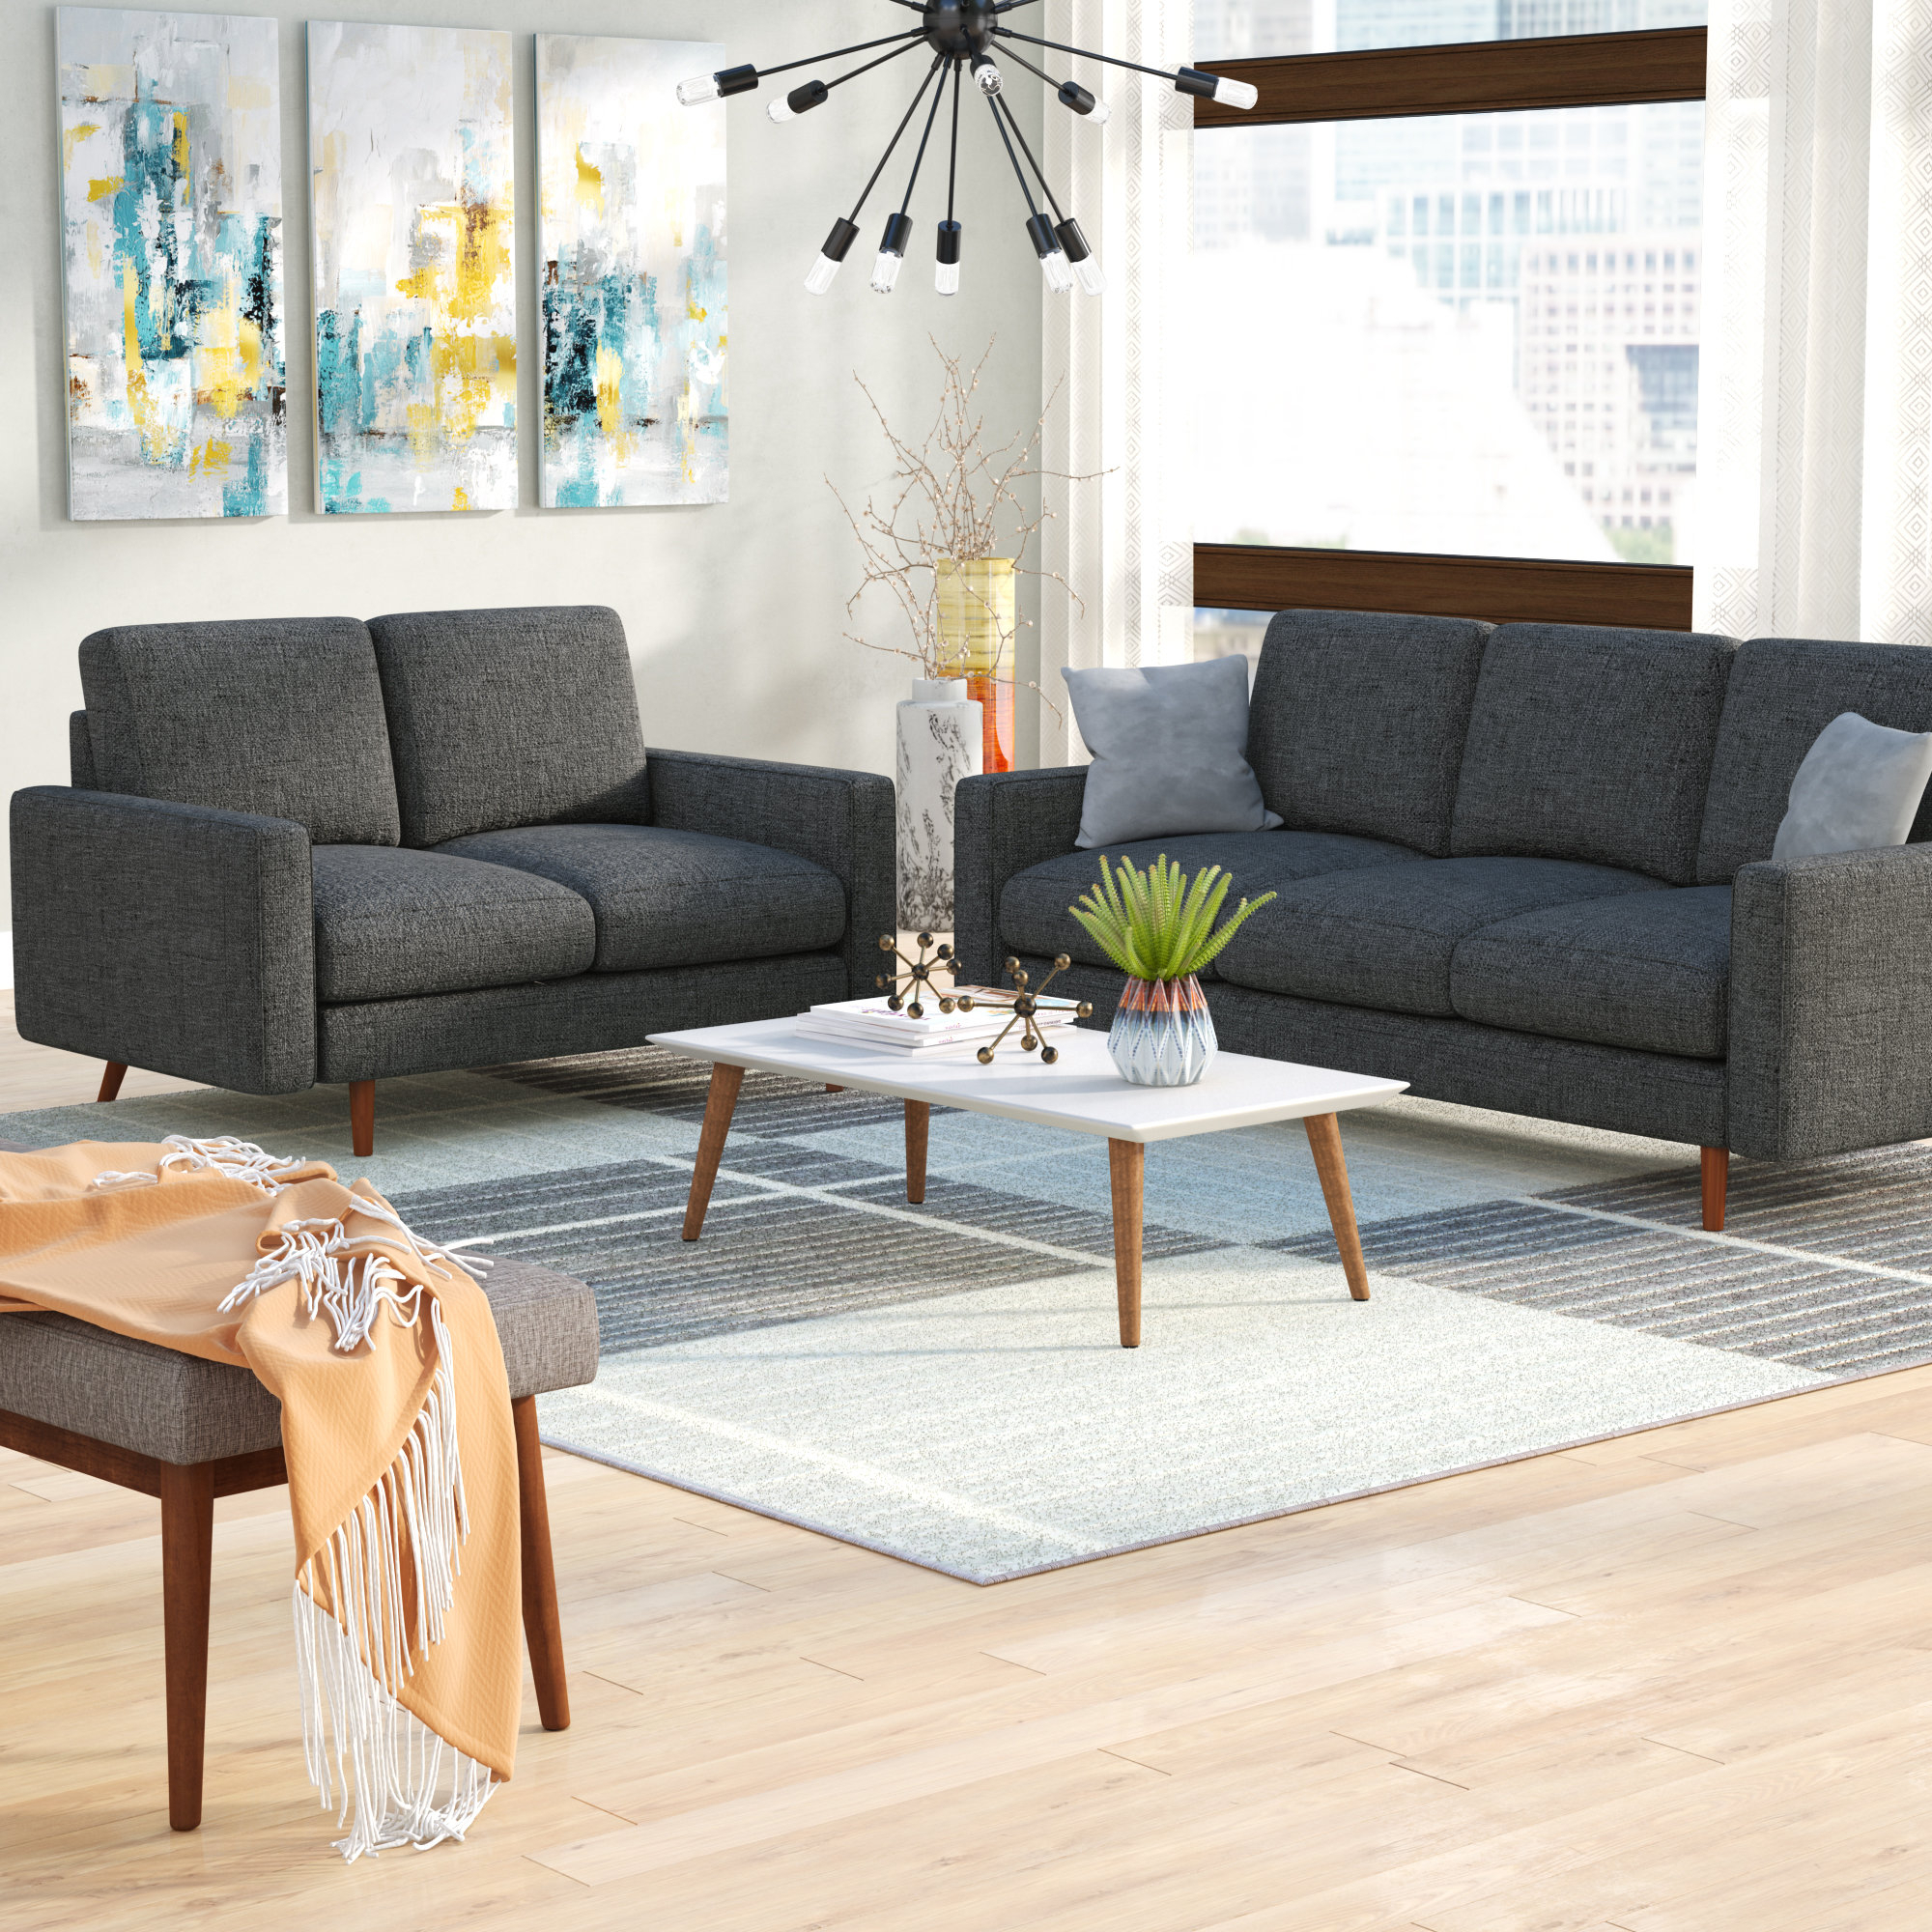 Macsen 2 Piece Living Room Set intended for 3 Piece Wall Decor Sets By Wrought Studio (Image 24 of 30)